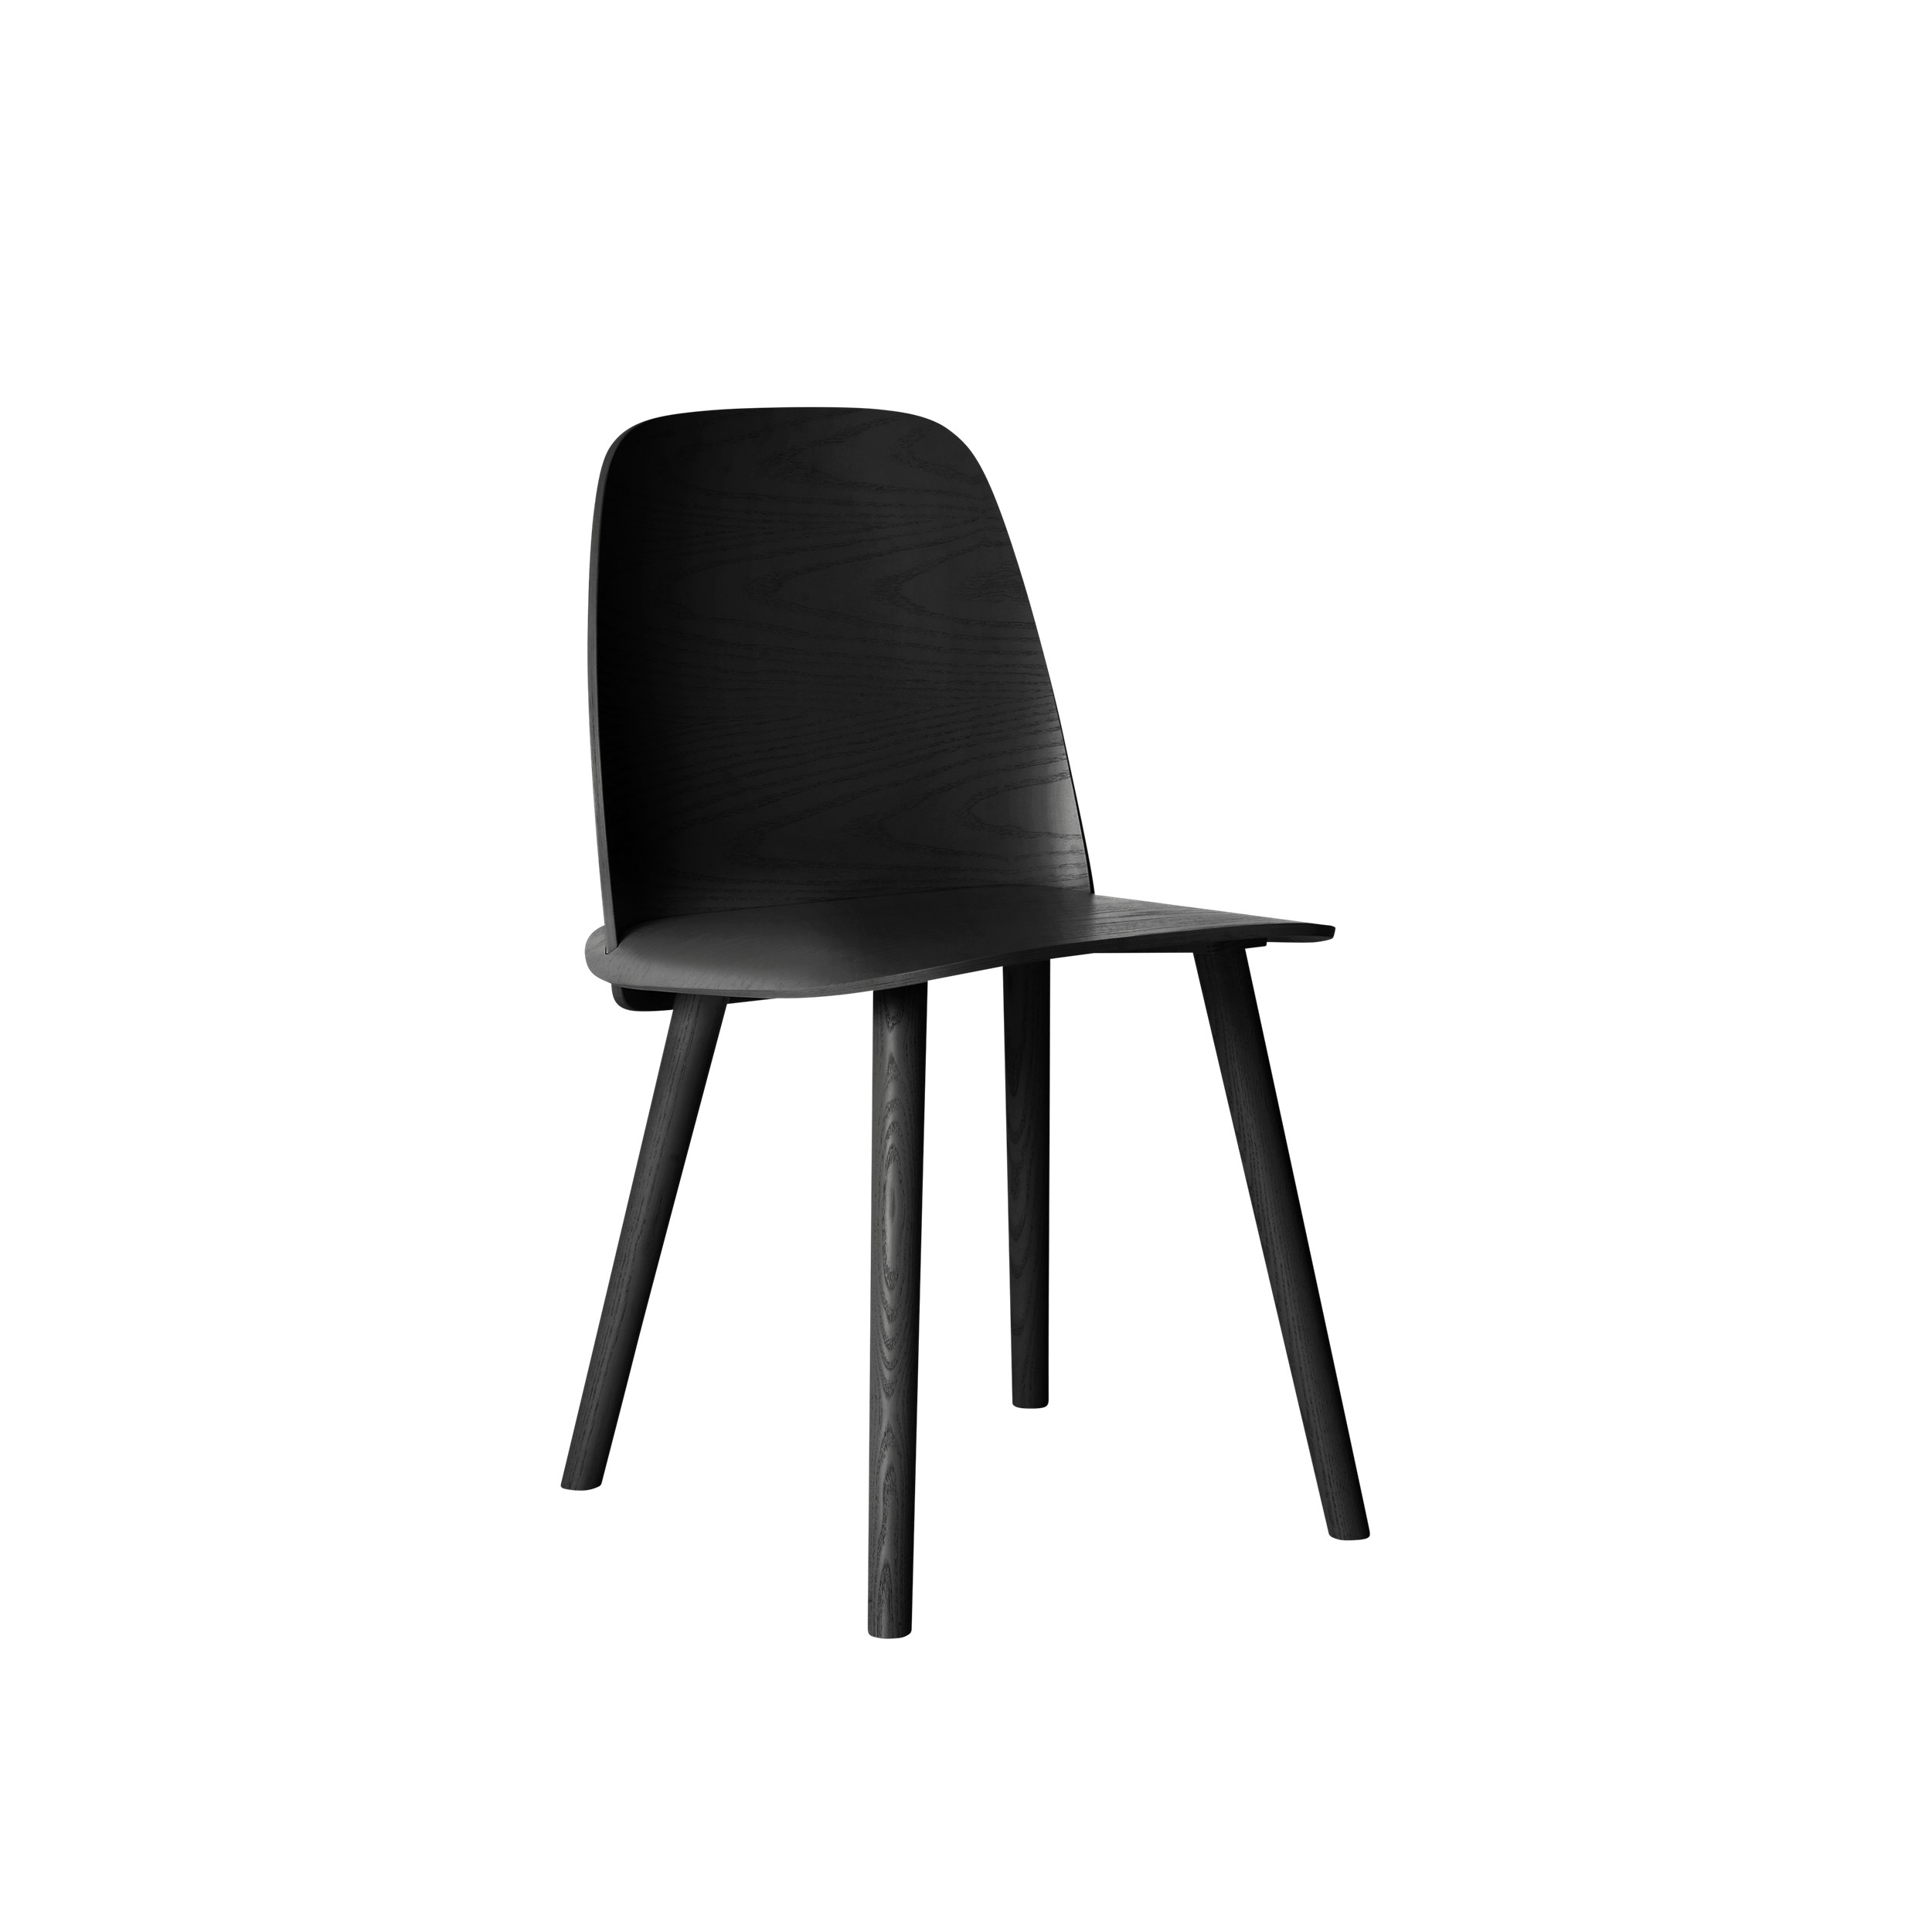 Muuto, Nerd chair, Black